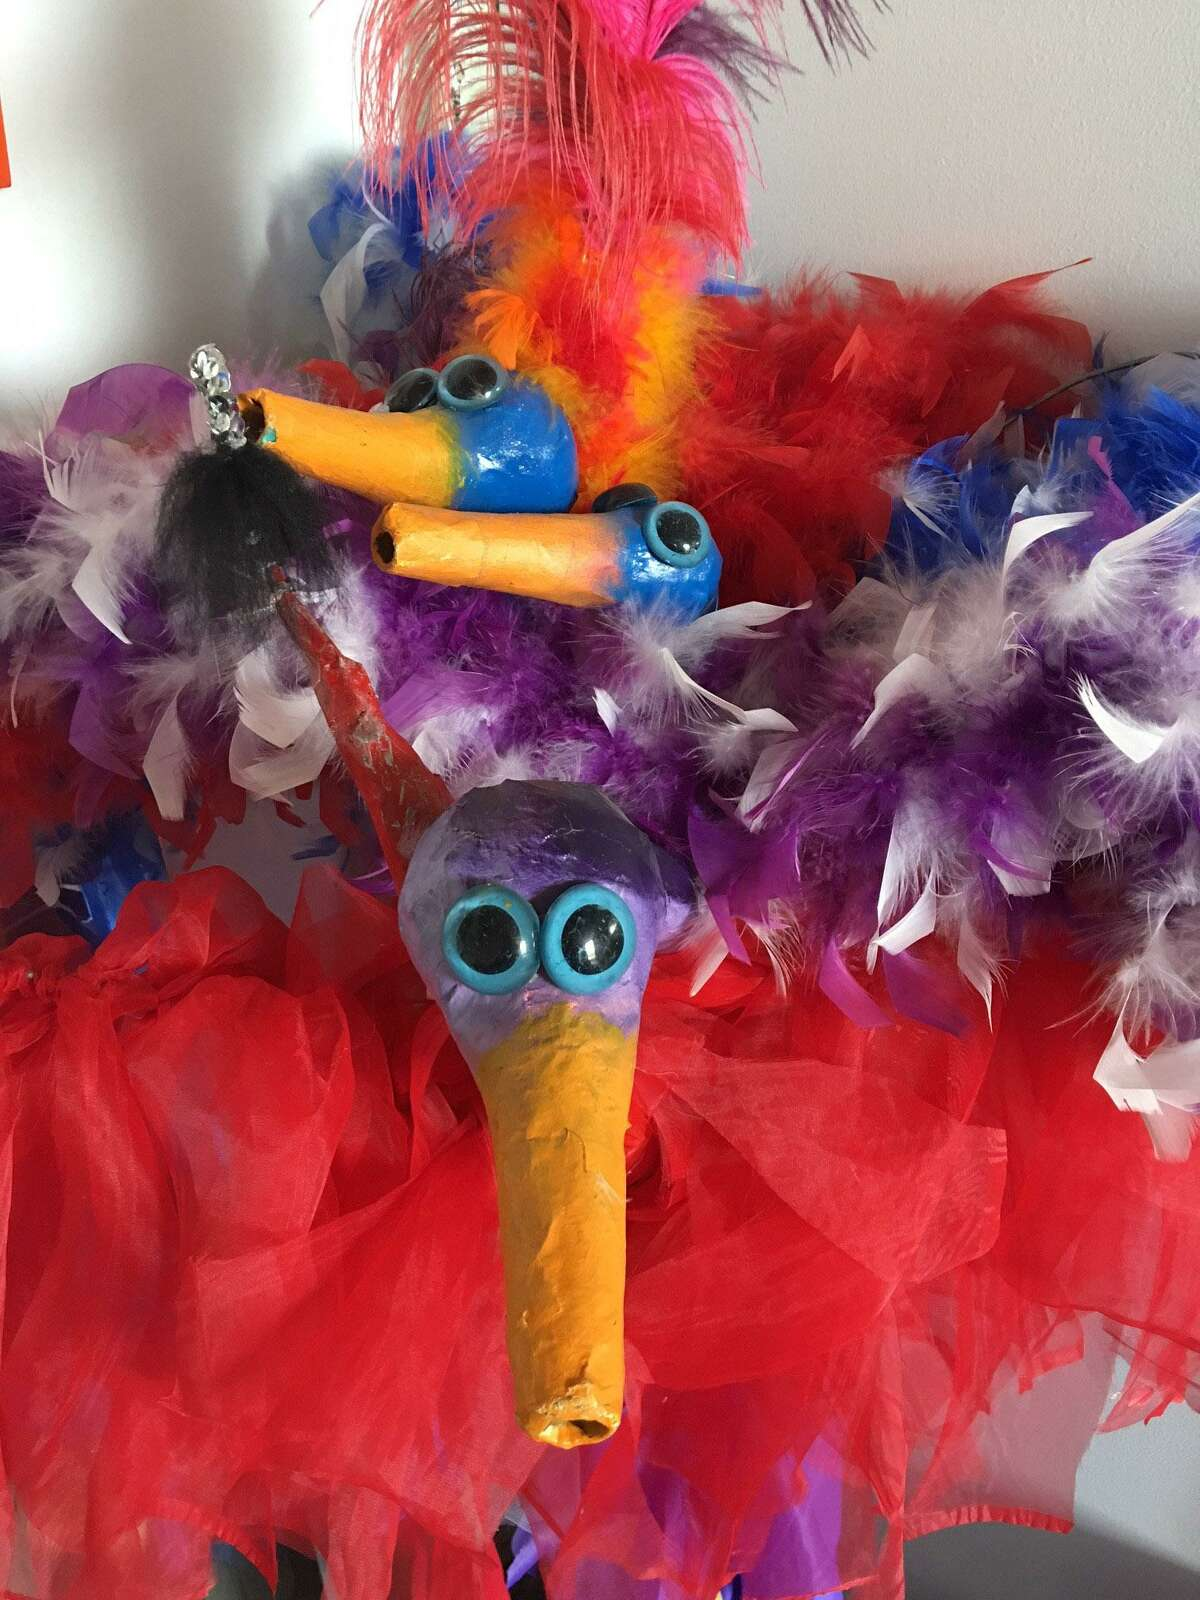 The 2017 Puppet Parade, part of the SoNo Arts Festival in Norwalk on Aug. 5 and 6, will feature all new puppets, including those above.